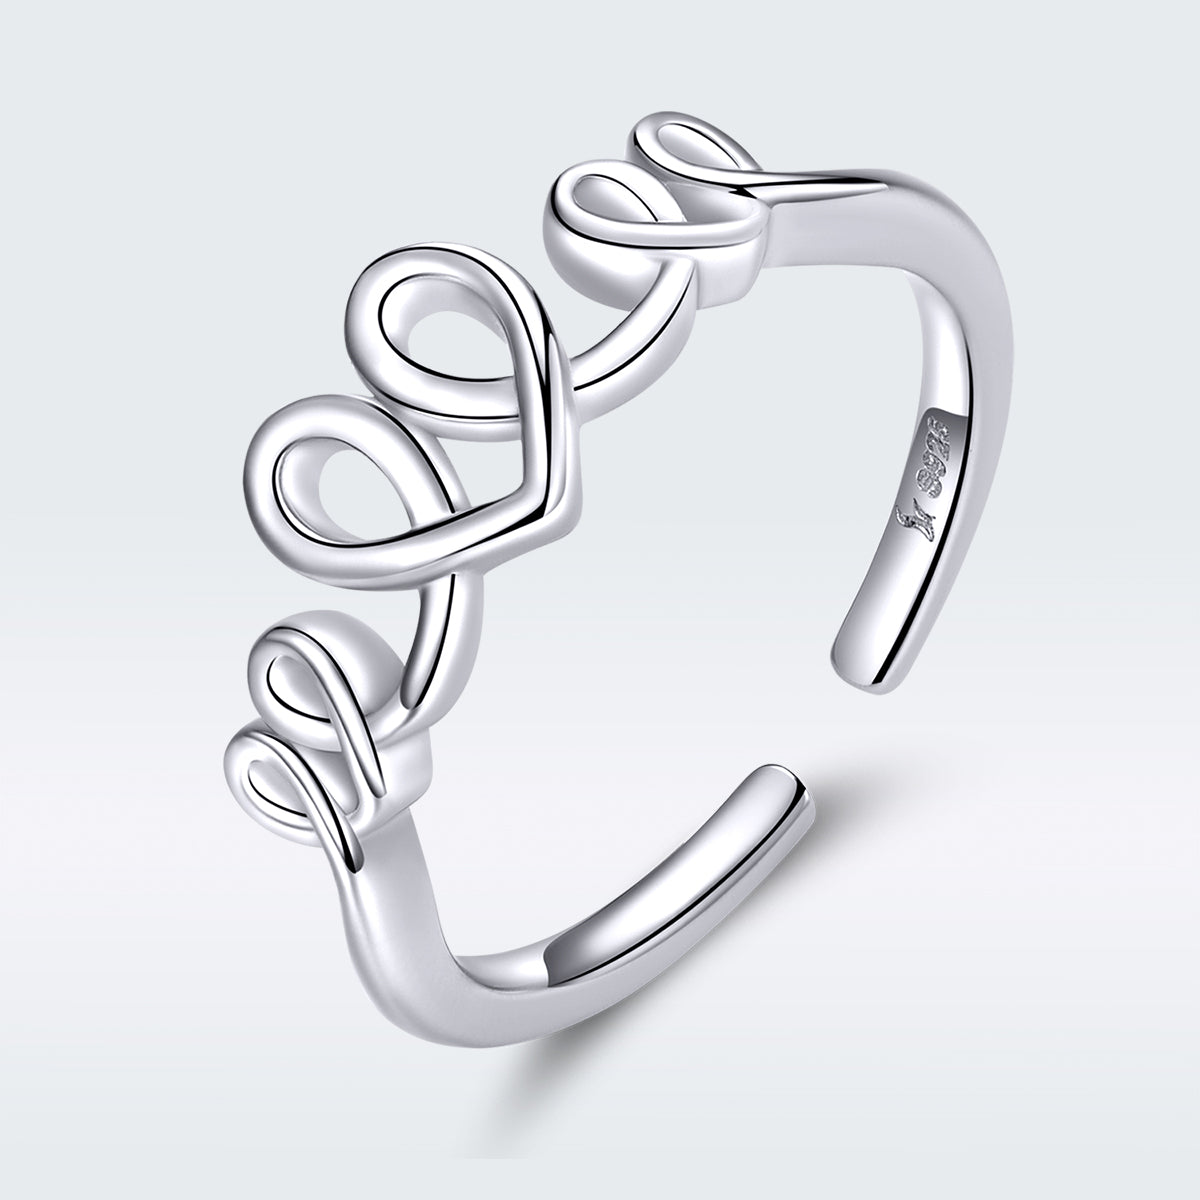 S925 sterling silver affection ring white gold plated winding ring